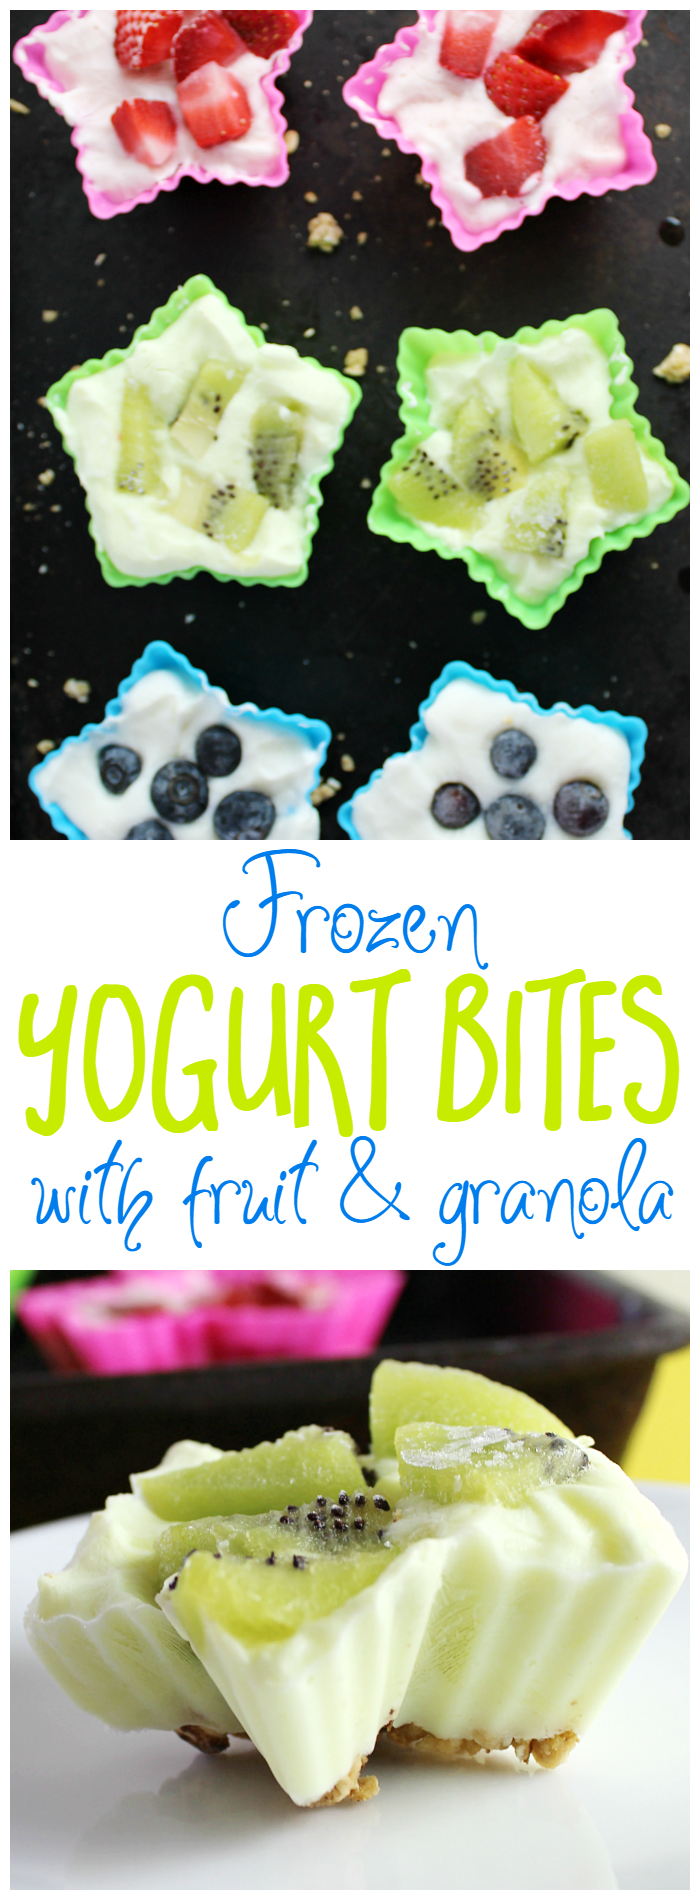 These frozen yogurt bites with fruit and granola make for a great afternoon snack! The best part is that the kids can help make them!